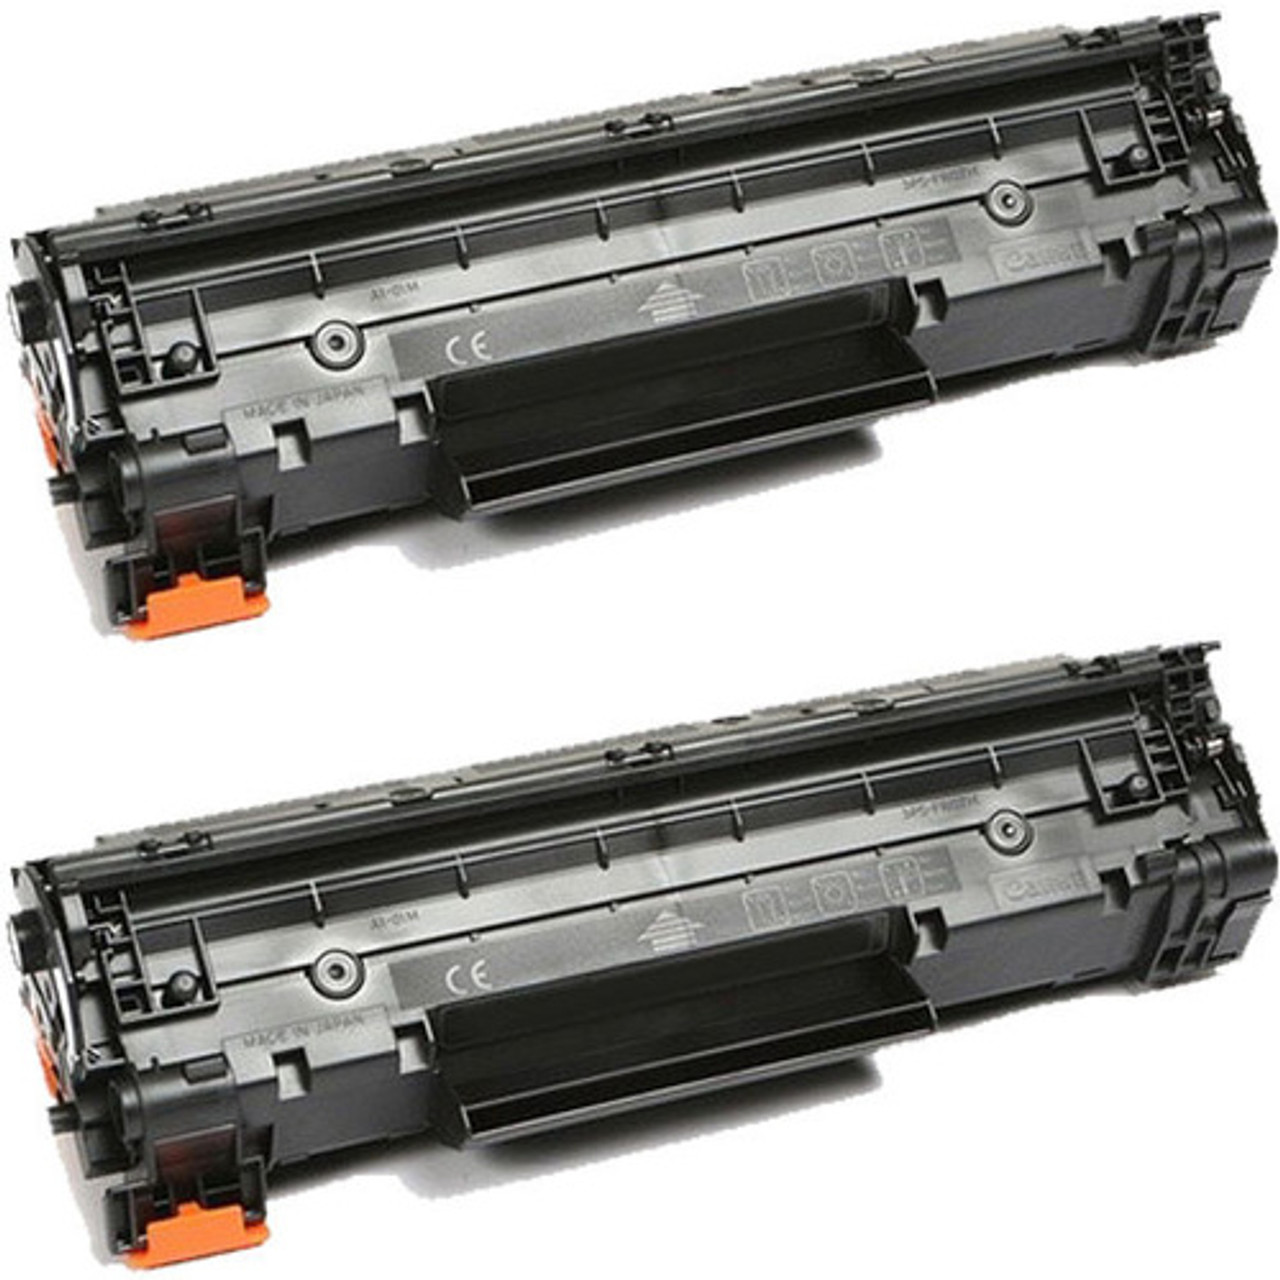 9435B001AA Black Works with: imageCLASS MF212W MF216N MF229DW Ink /& Toner USA Compatible Toner Replacement for Canon 137 CRG 137 MF227DW